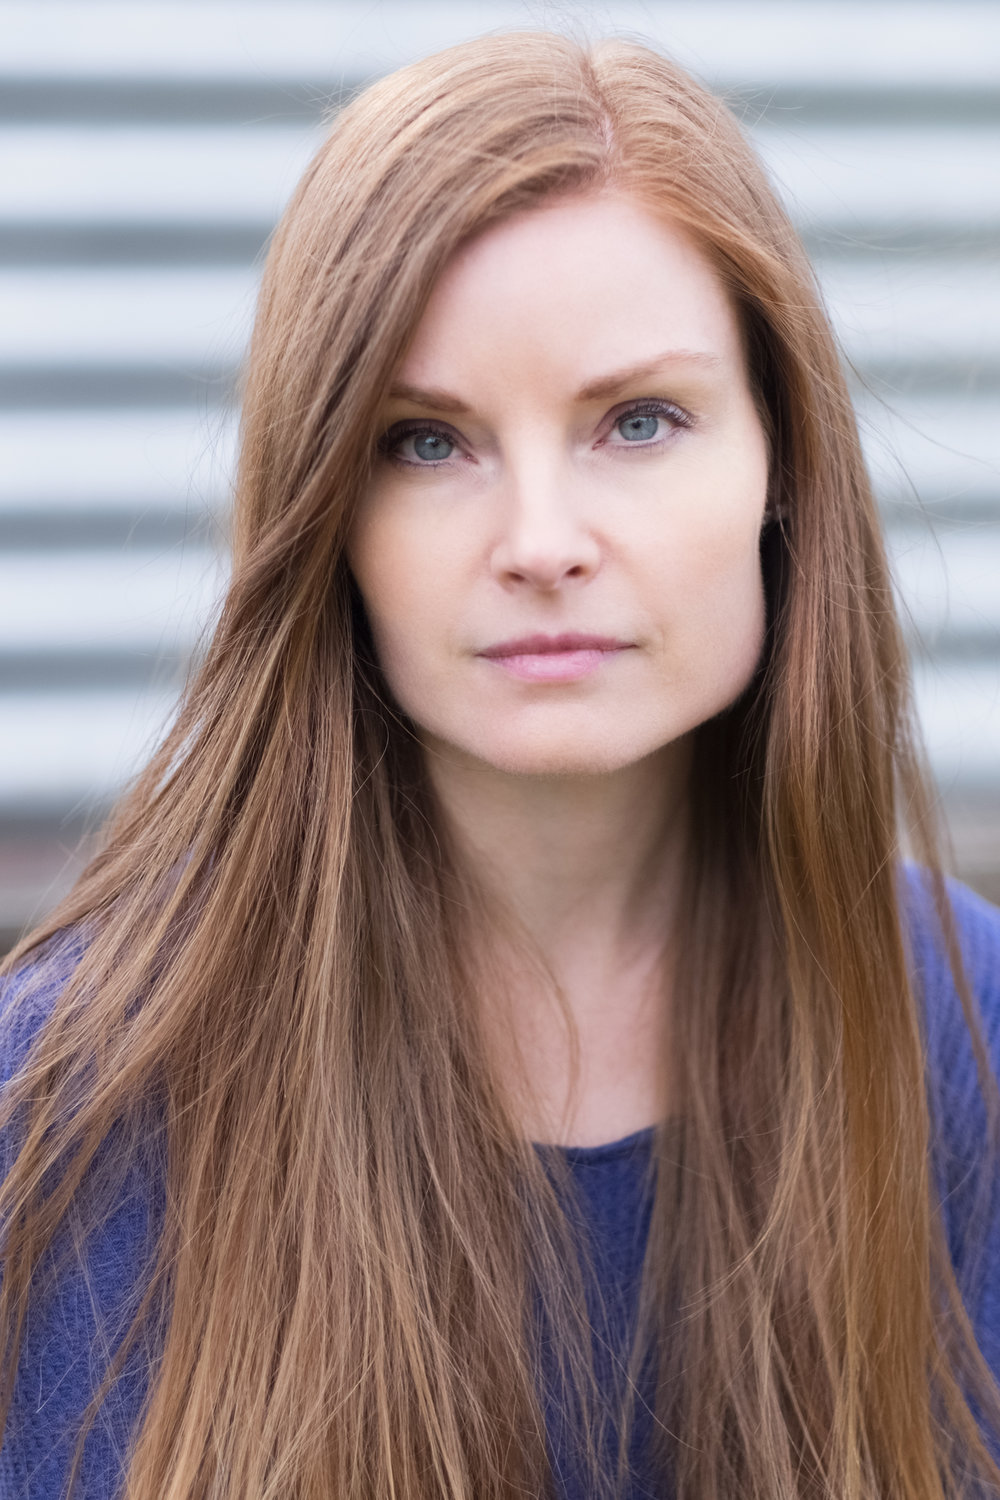 Melbourne Actor's Headshots - Rebekah Kerr